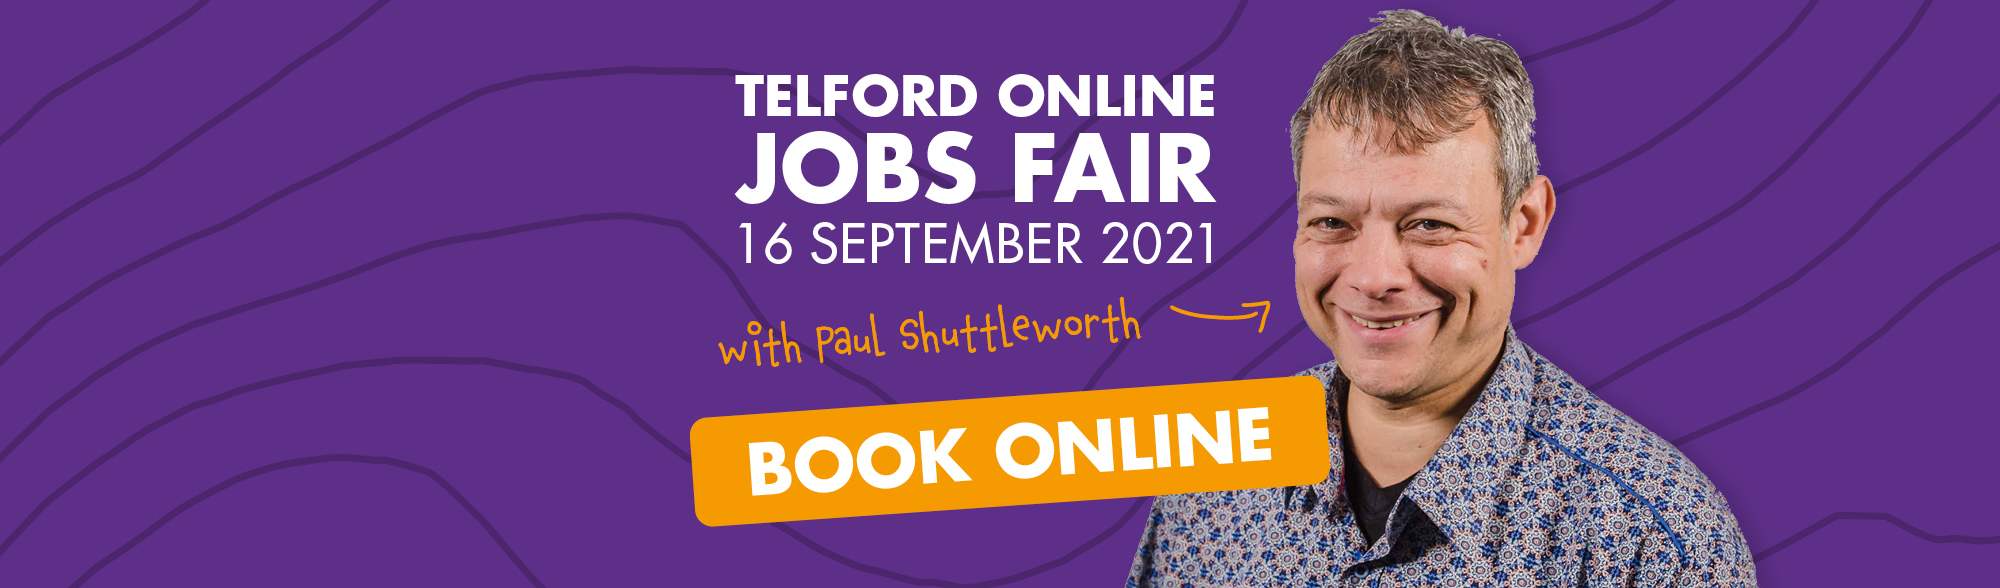 Graphic promoting an online jobs fair on 16 September 2021